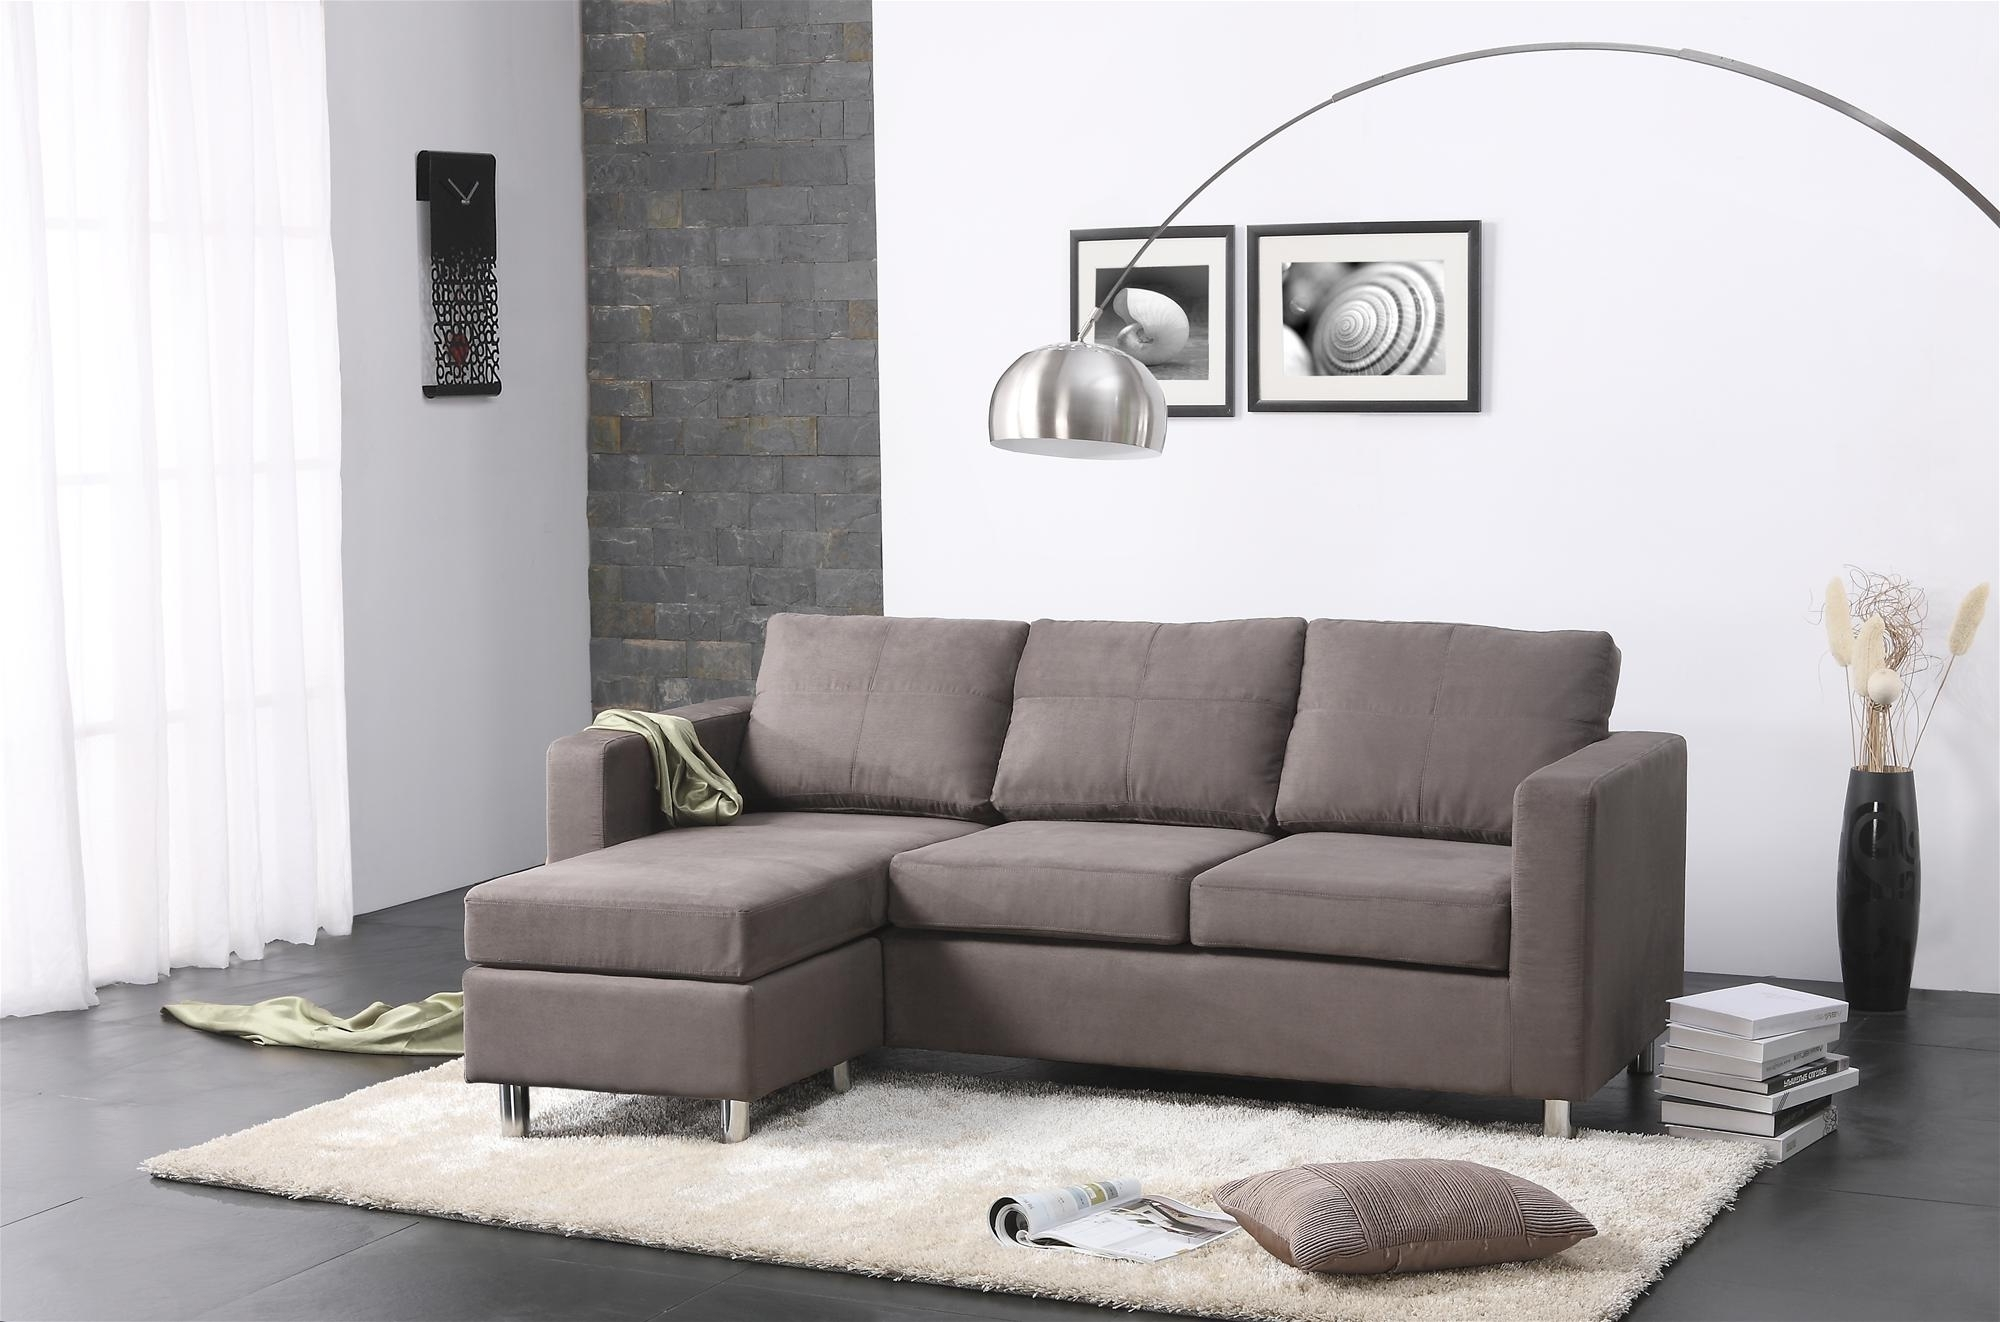 Sofa : Small Sofas For Small Spaces Tiny Sleeper Sofa Retro Sofa Inside 2018 Sectional Sofas For Small Areas (View 18 of 20)